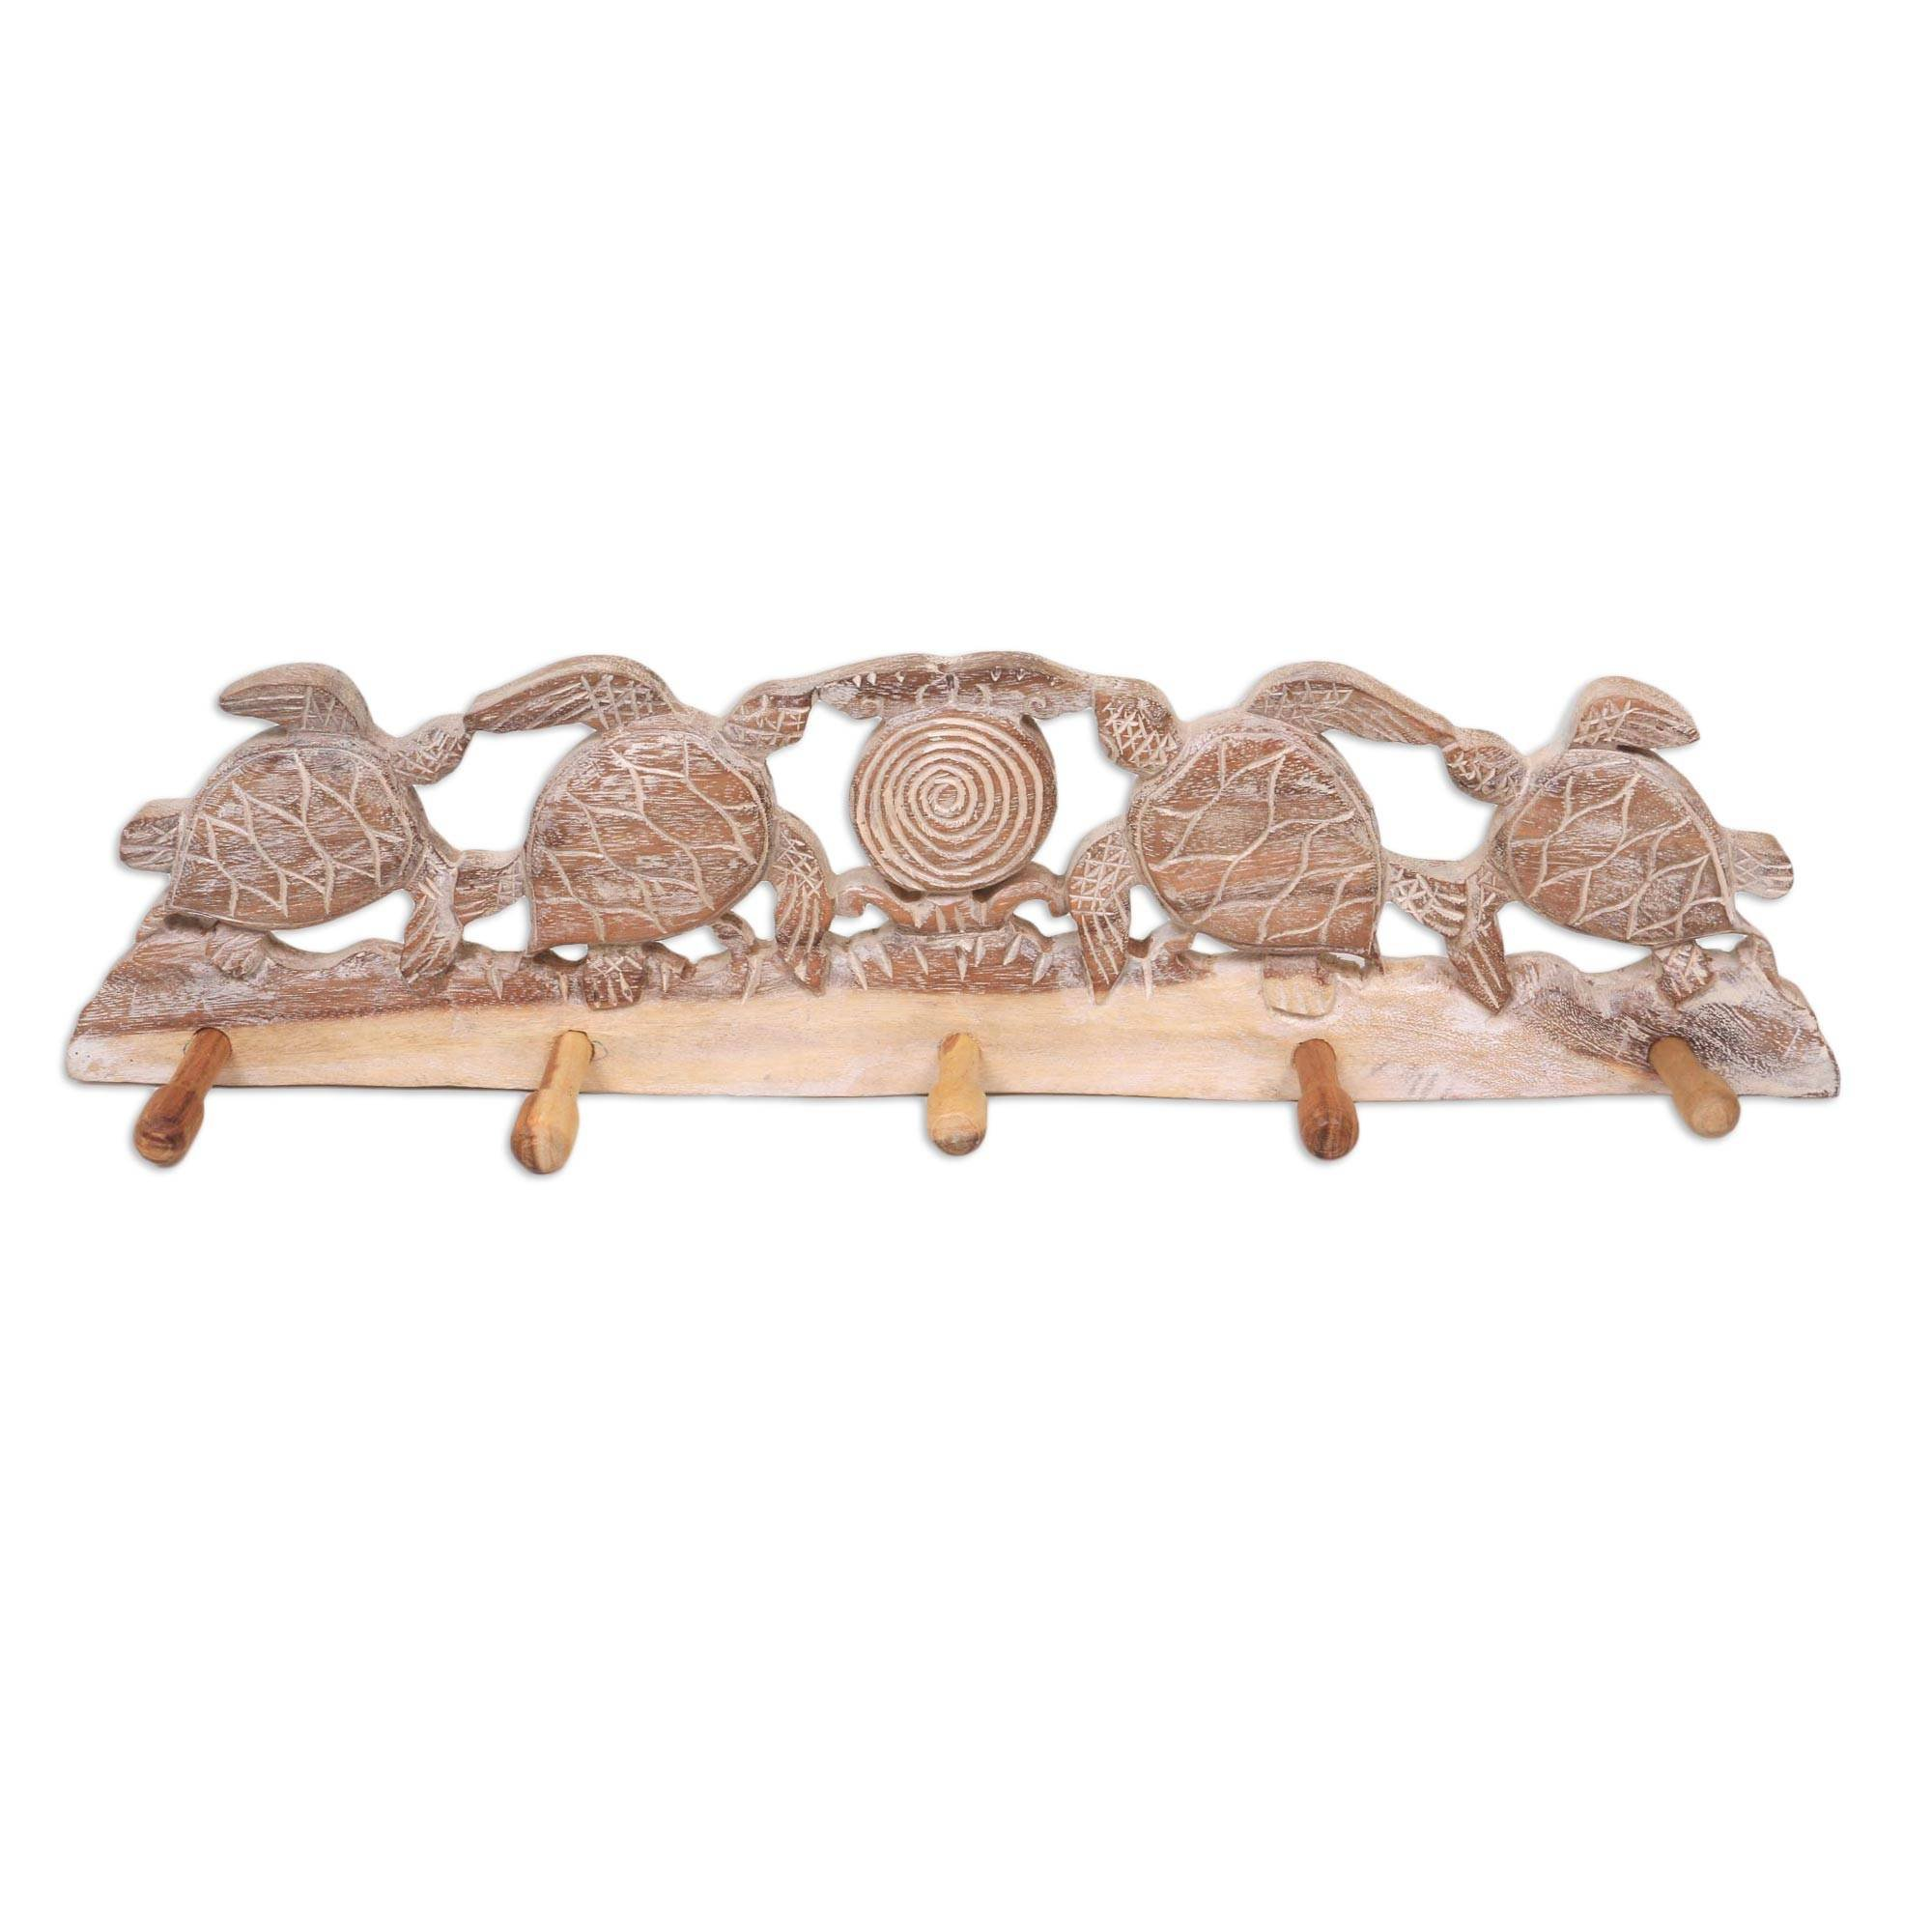 NOVICA Animal Themed Wood Wall Mounted Coat Hanger, Brown and White, Turtle Bay Beach' by NOVICA (Image #1)